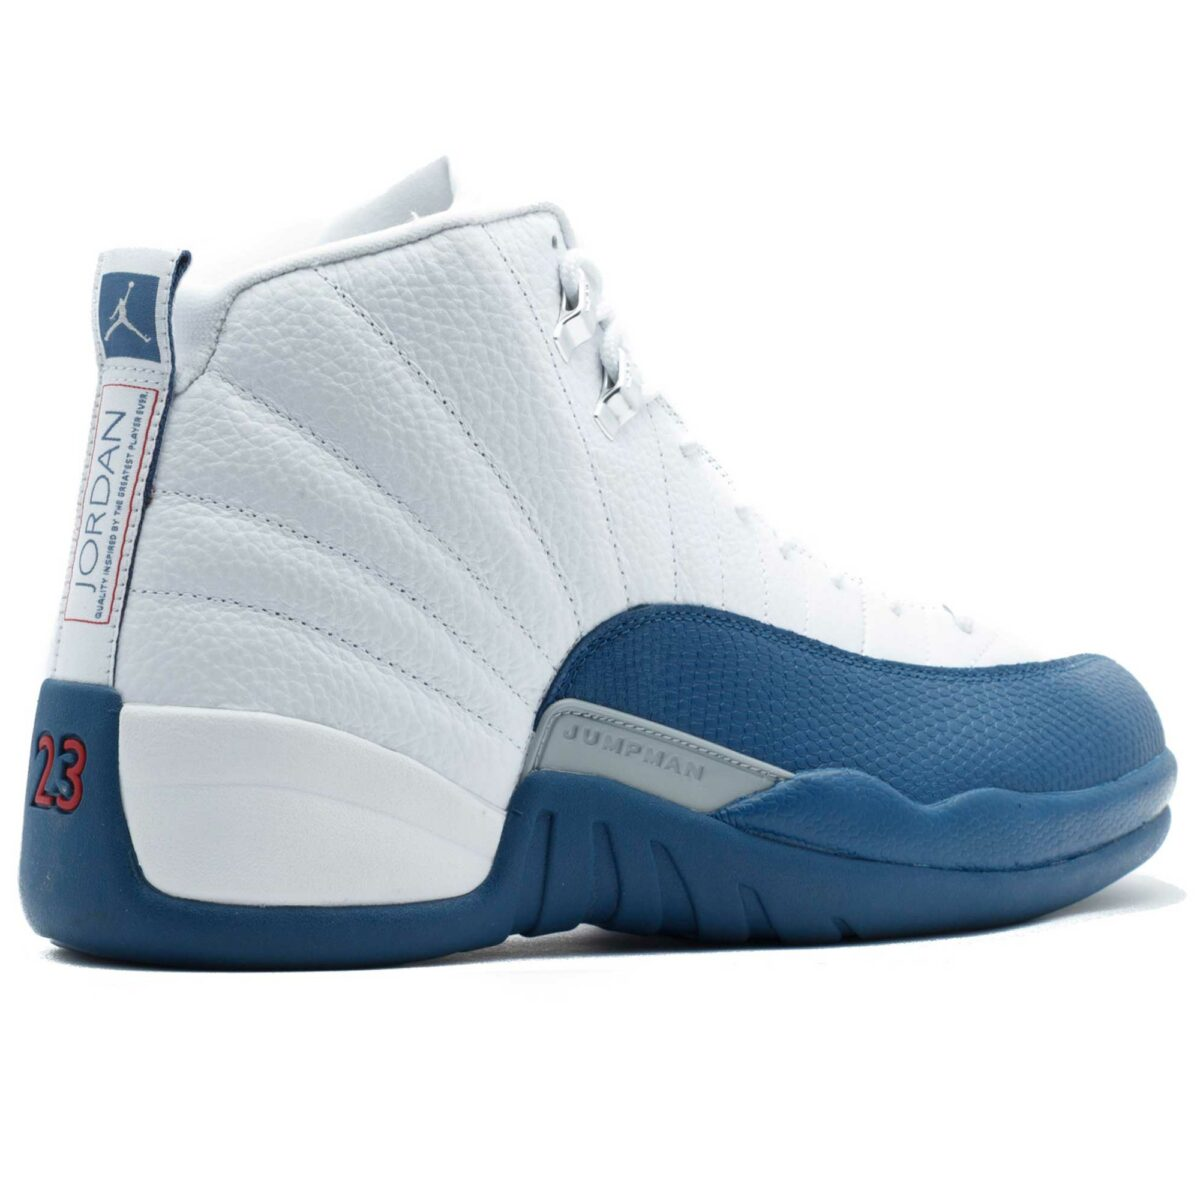 nike air Jordan 12 XII retro french blue 130690 113 купить